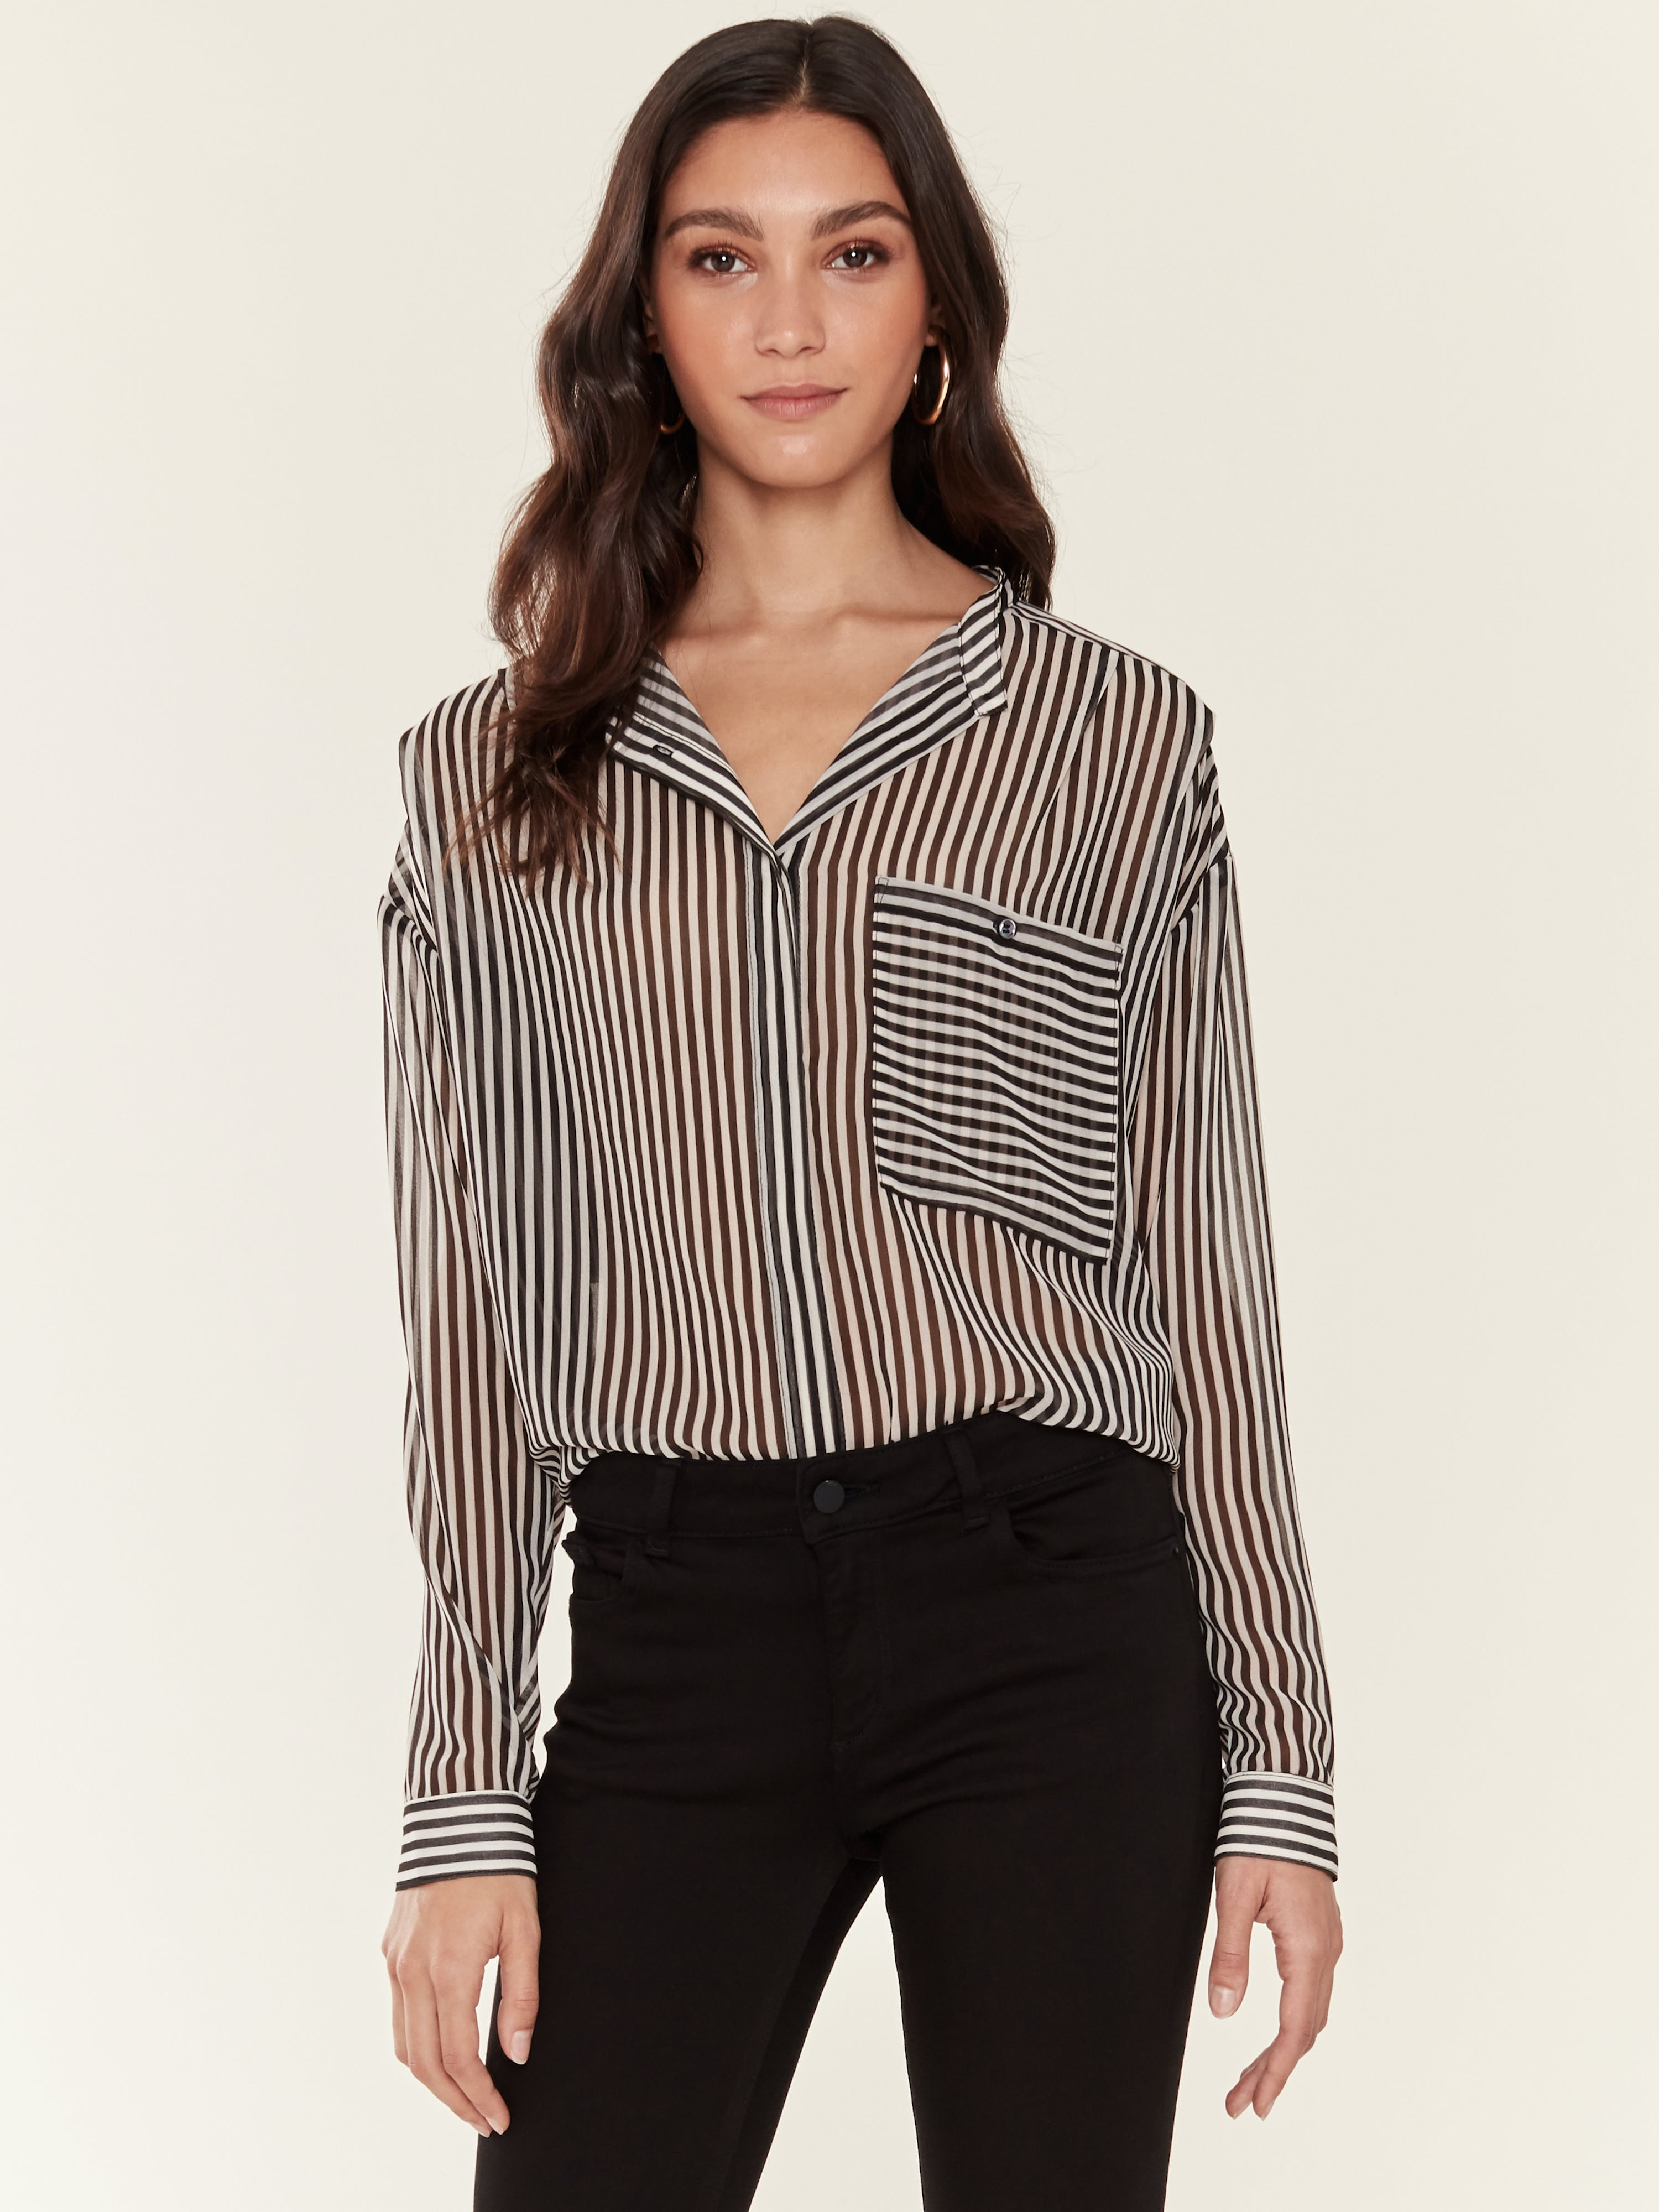 Icons Objects Of Devotion Moderne Blouse - L In Black